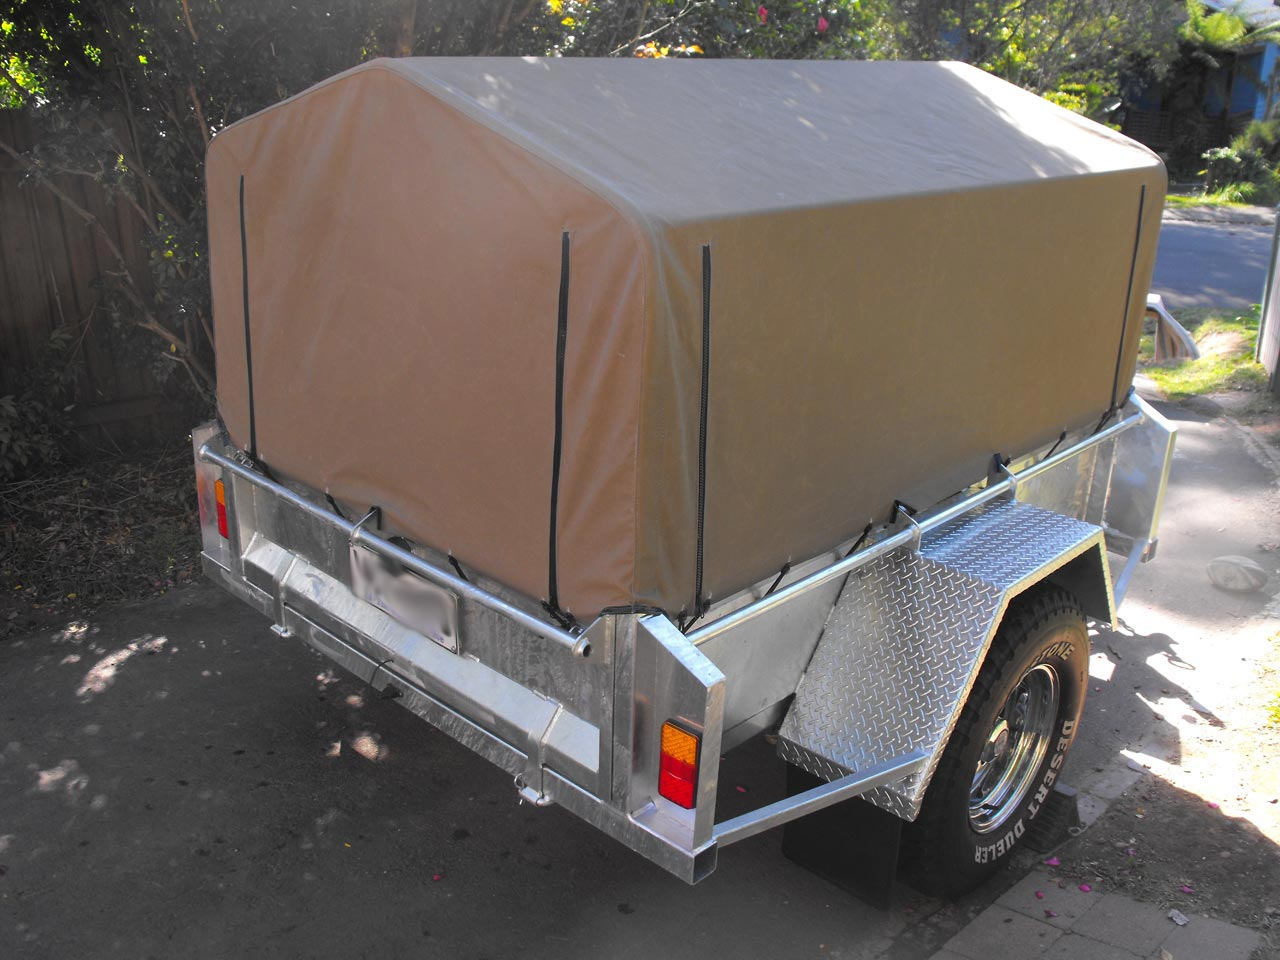 How To Quote A Website >> Trailer Canopies & Covers:Wallaby Track Canvas